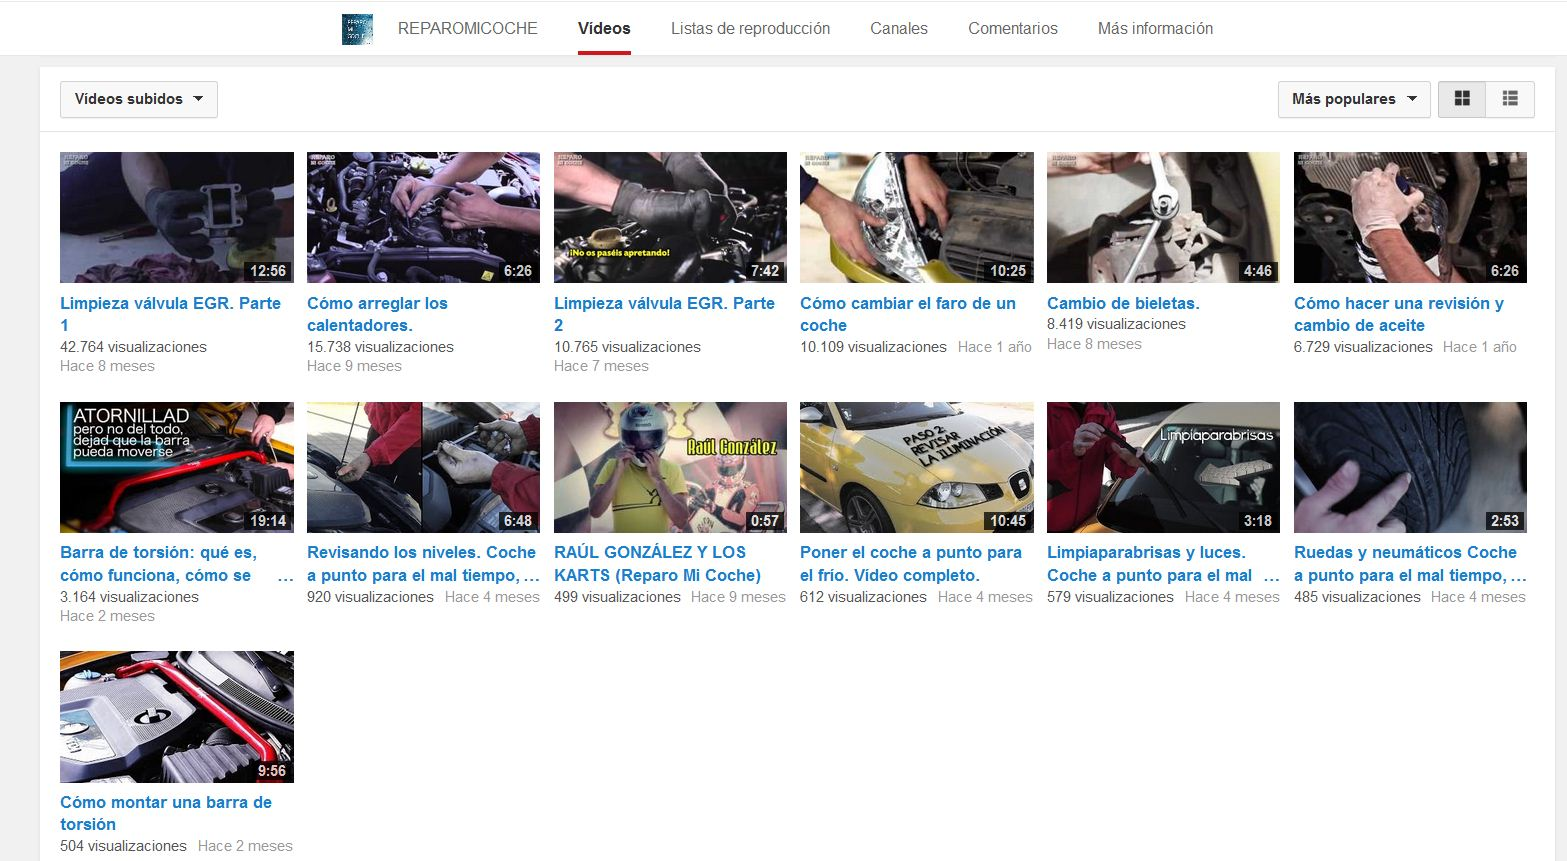 02_videos_canal_Reparo_Mi_Coche-100.000_visualizaciones